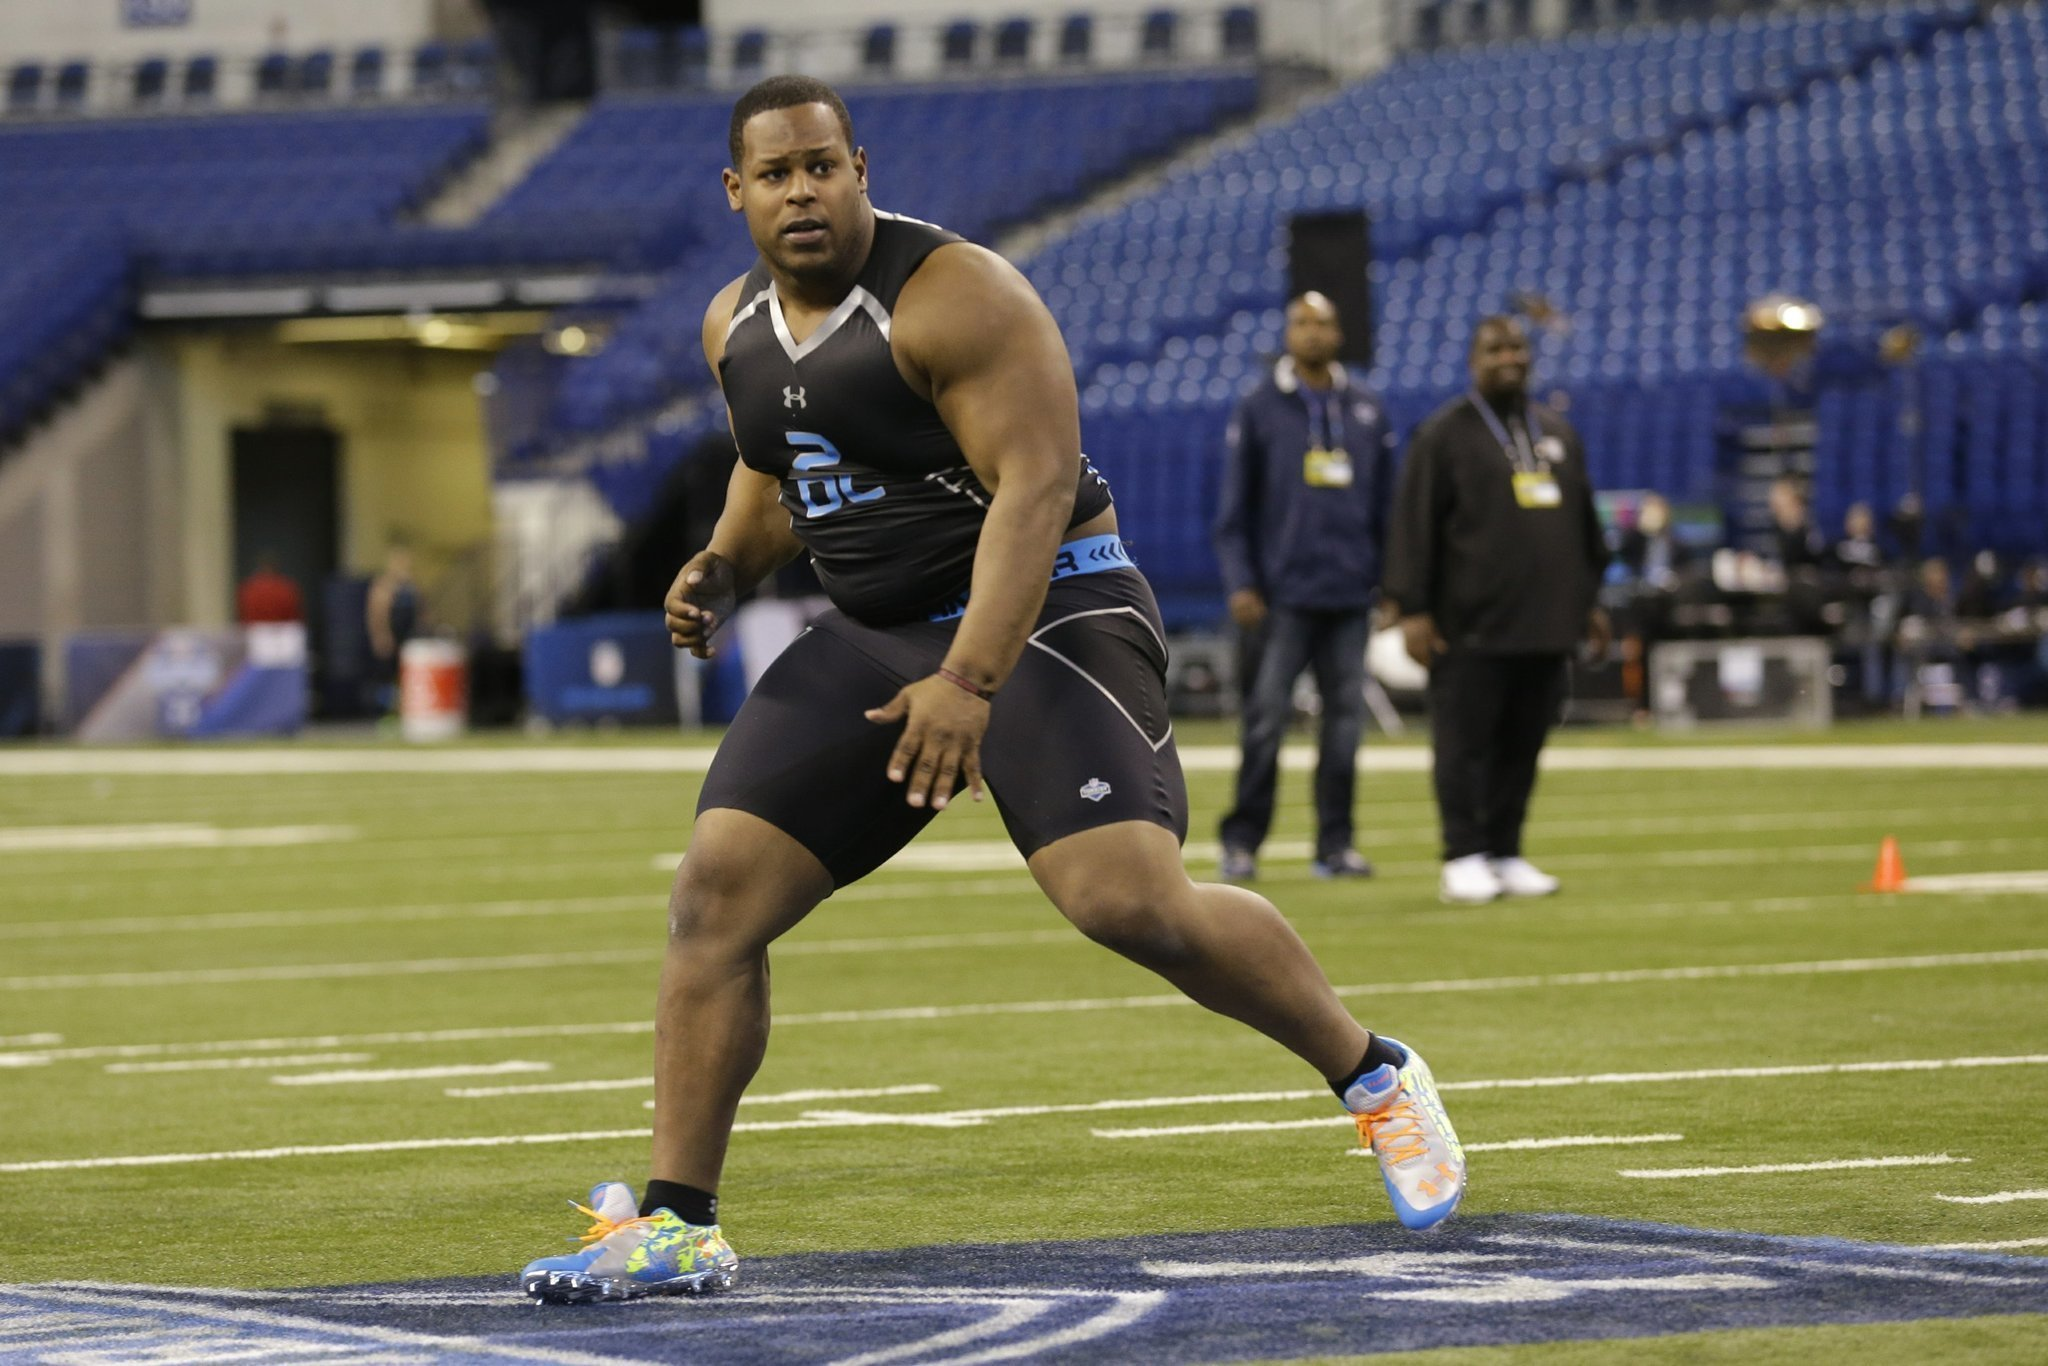 Chargers Draft Nose Tackle Carrethers The San Diego